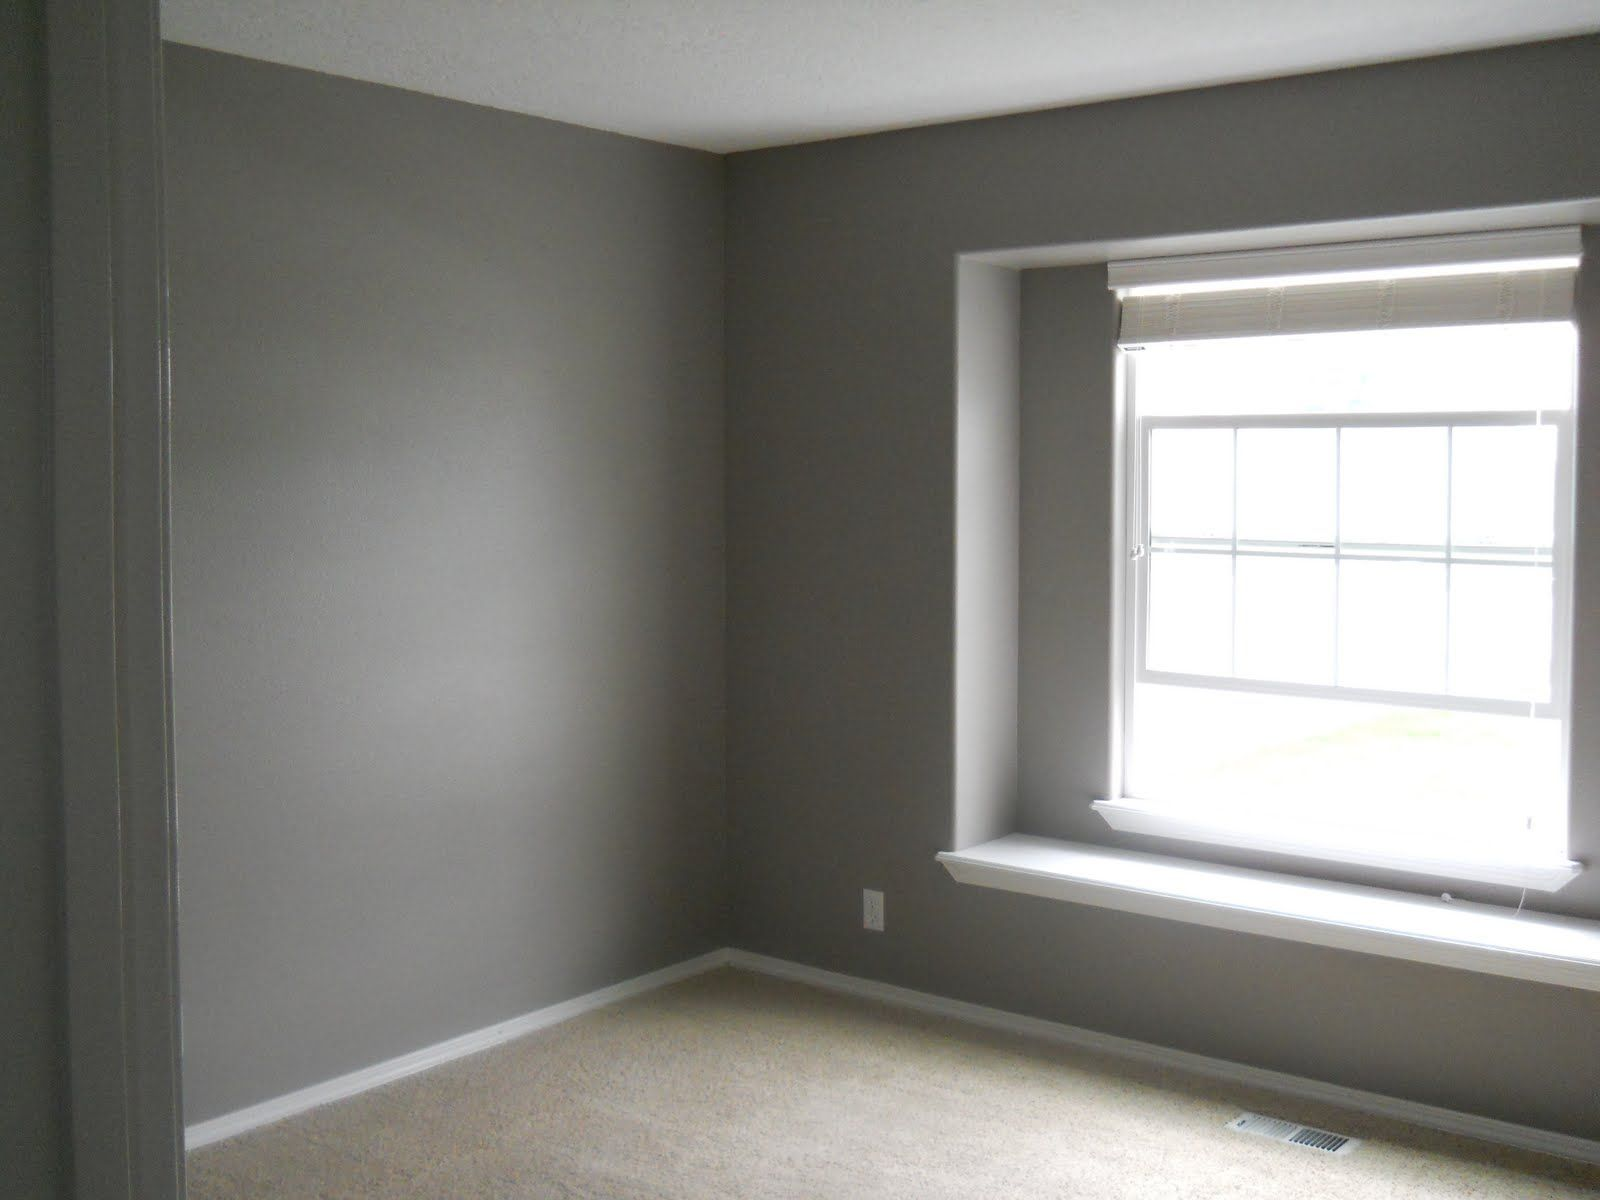 Behr Fashion Gray For The Master Bedroom Or The Living Room Home Pinterest Behr Master